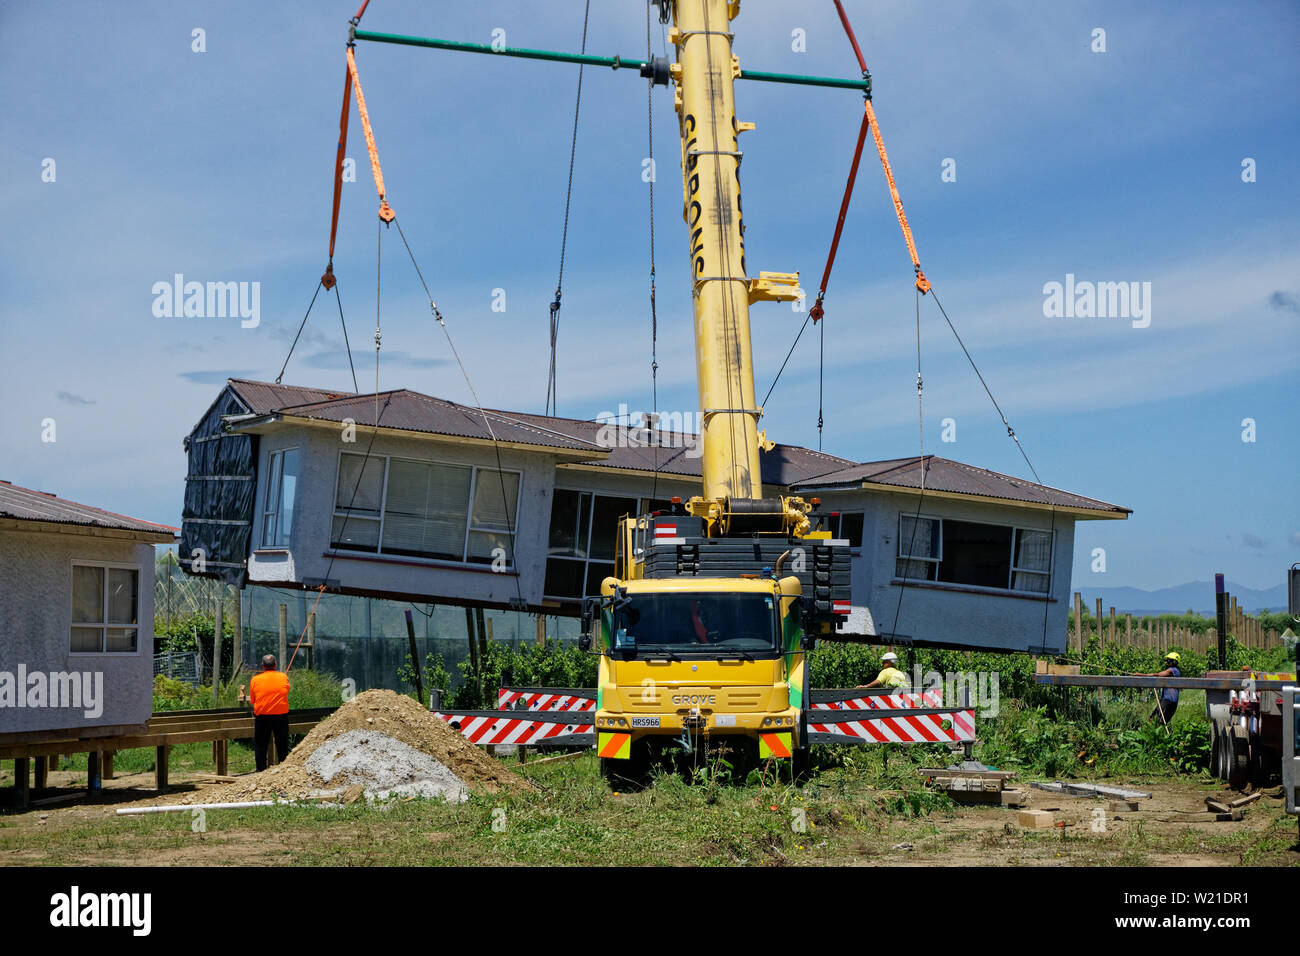 Motueka, Tasman/New Zealand - December 7, 2018: A house that has been sawn in two and moved to its new address being unloaded from a truck. Stock Photo